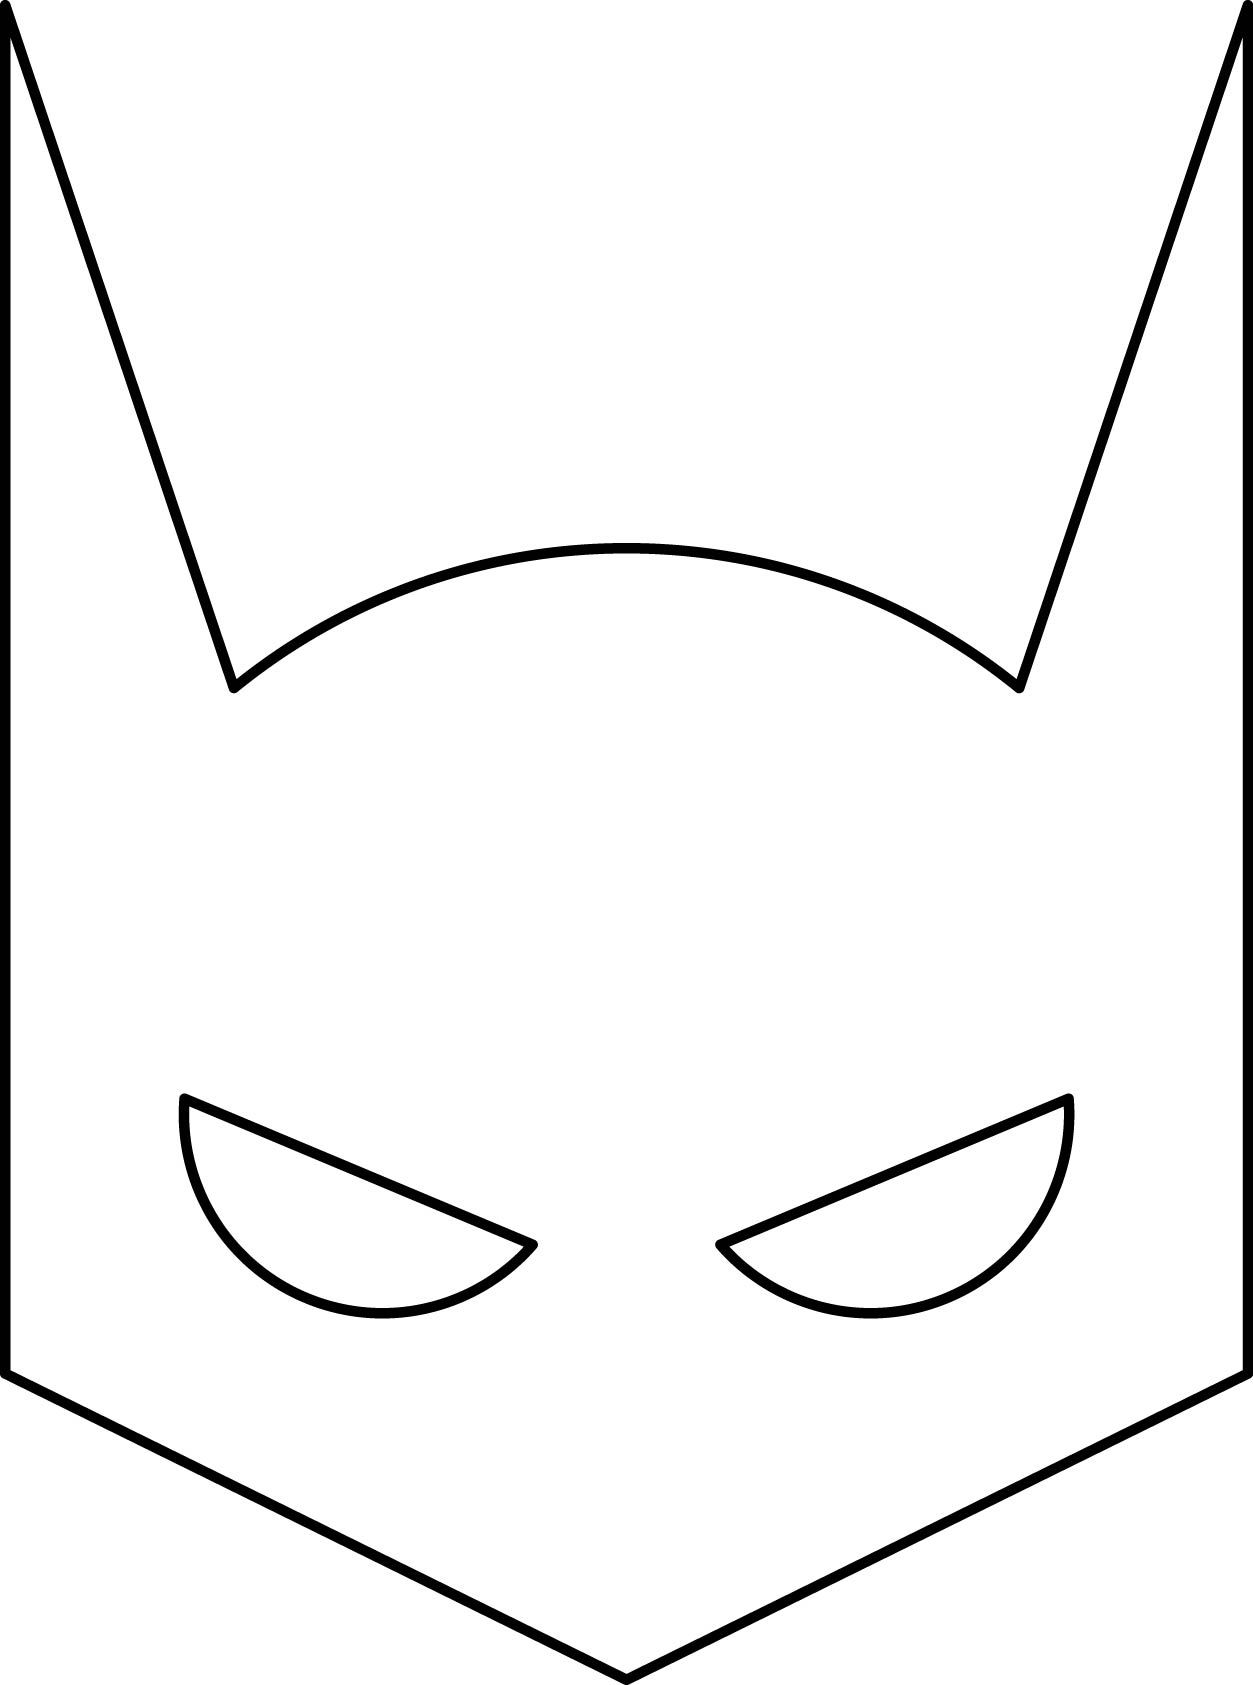 Batman Mask Coloring Pages | Superhero mask template ...